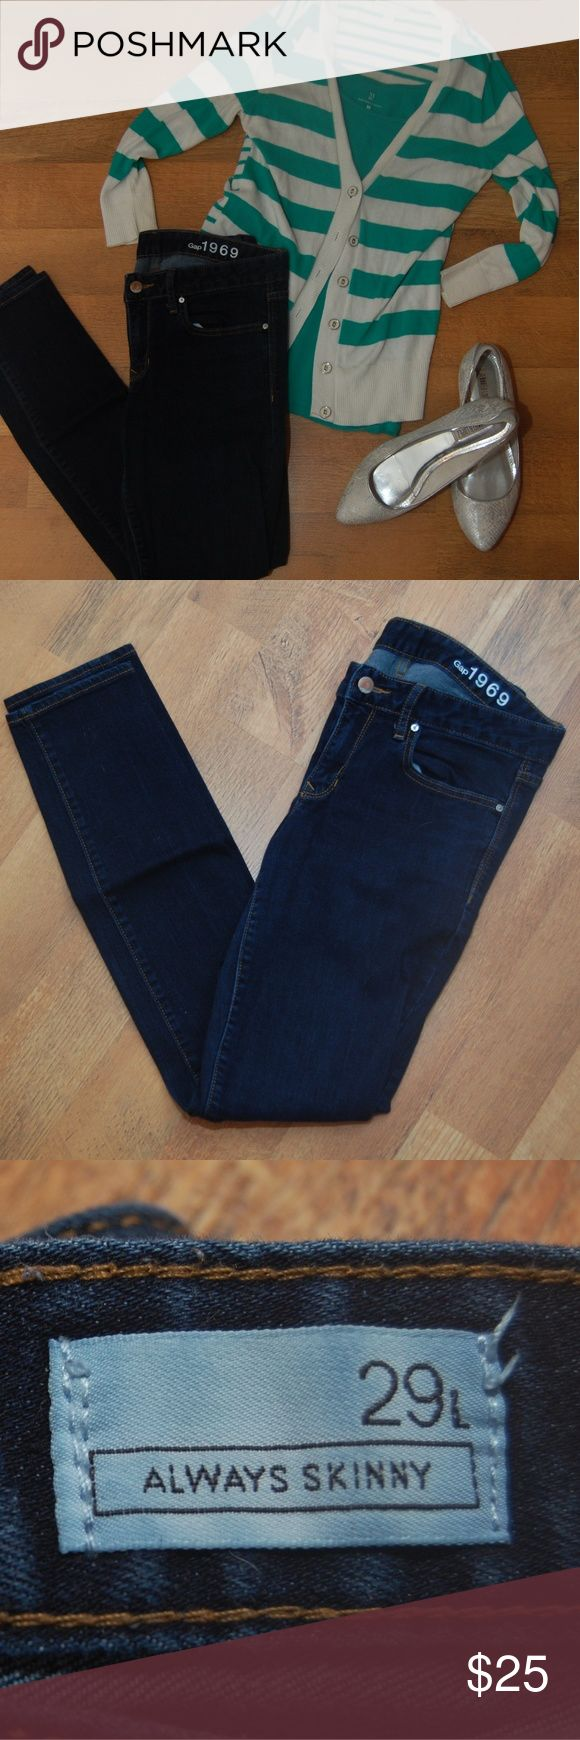 Gap Jeans, Always Skinny, Dark Wash, 29L Great dark wash skinny jeans, easy to dress up or down.  Pictured? items available in closet. GAP Jeans Skinny